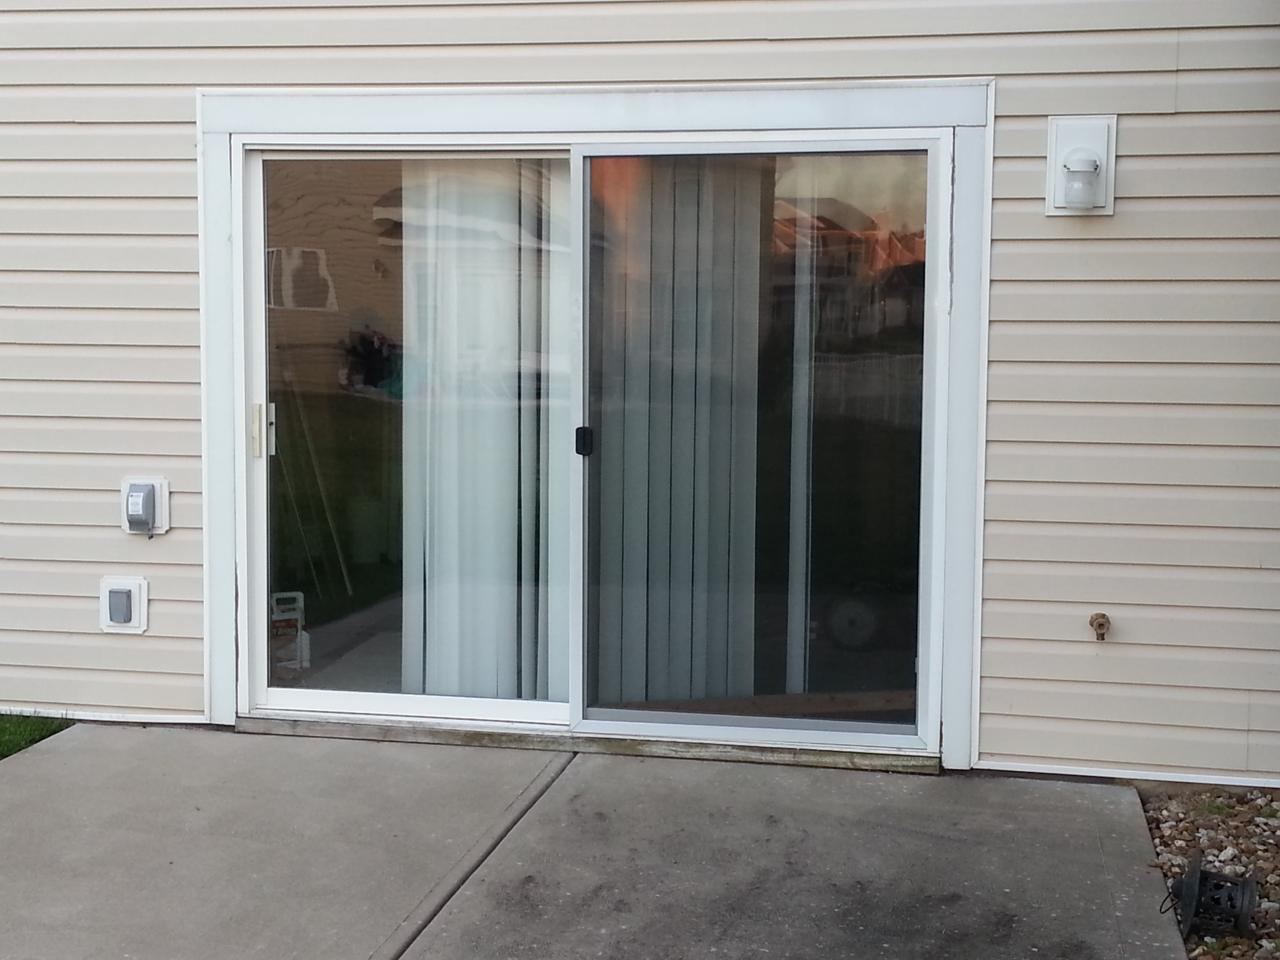 Patio Design Patio Doors With Internal Blinds For Best Access